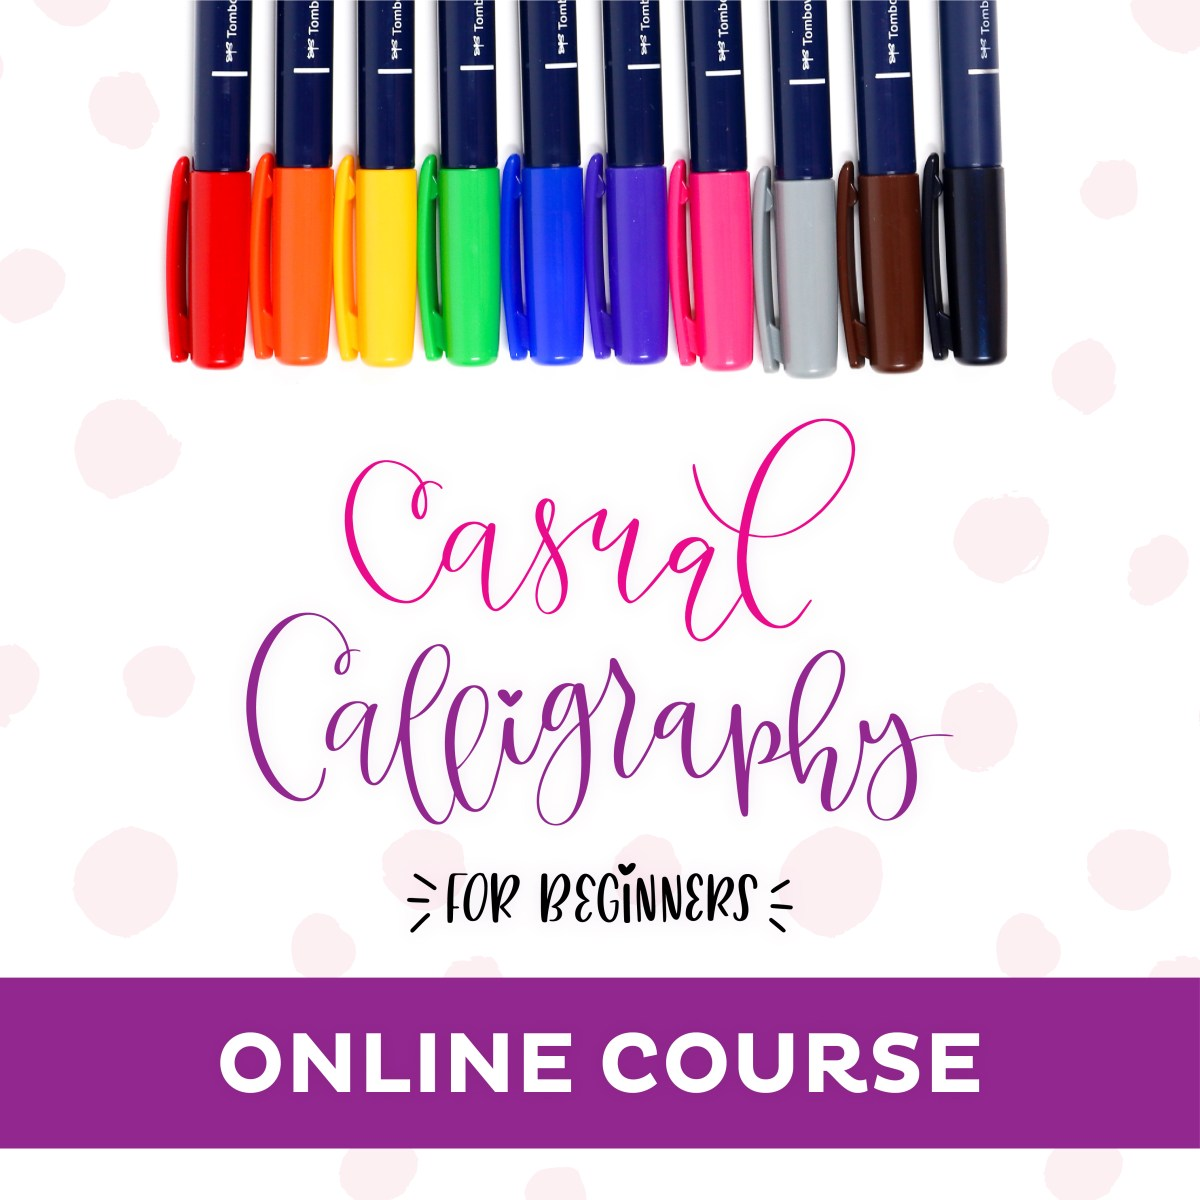 Learn to use a Calligraphy pen and brush pen in a style that FITS YOU with the Casual Calligraphy Course!